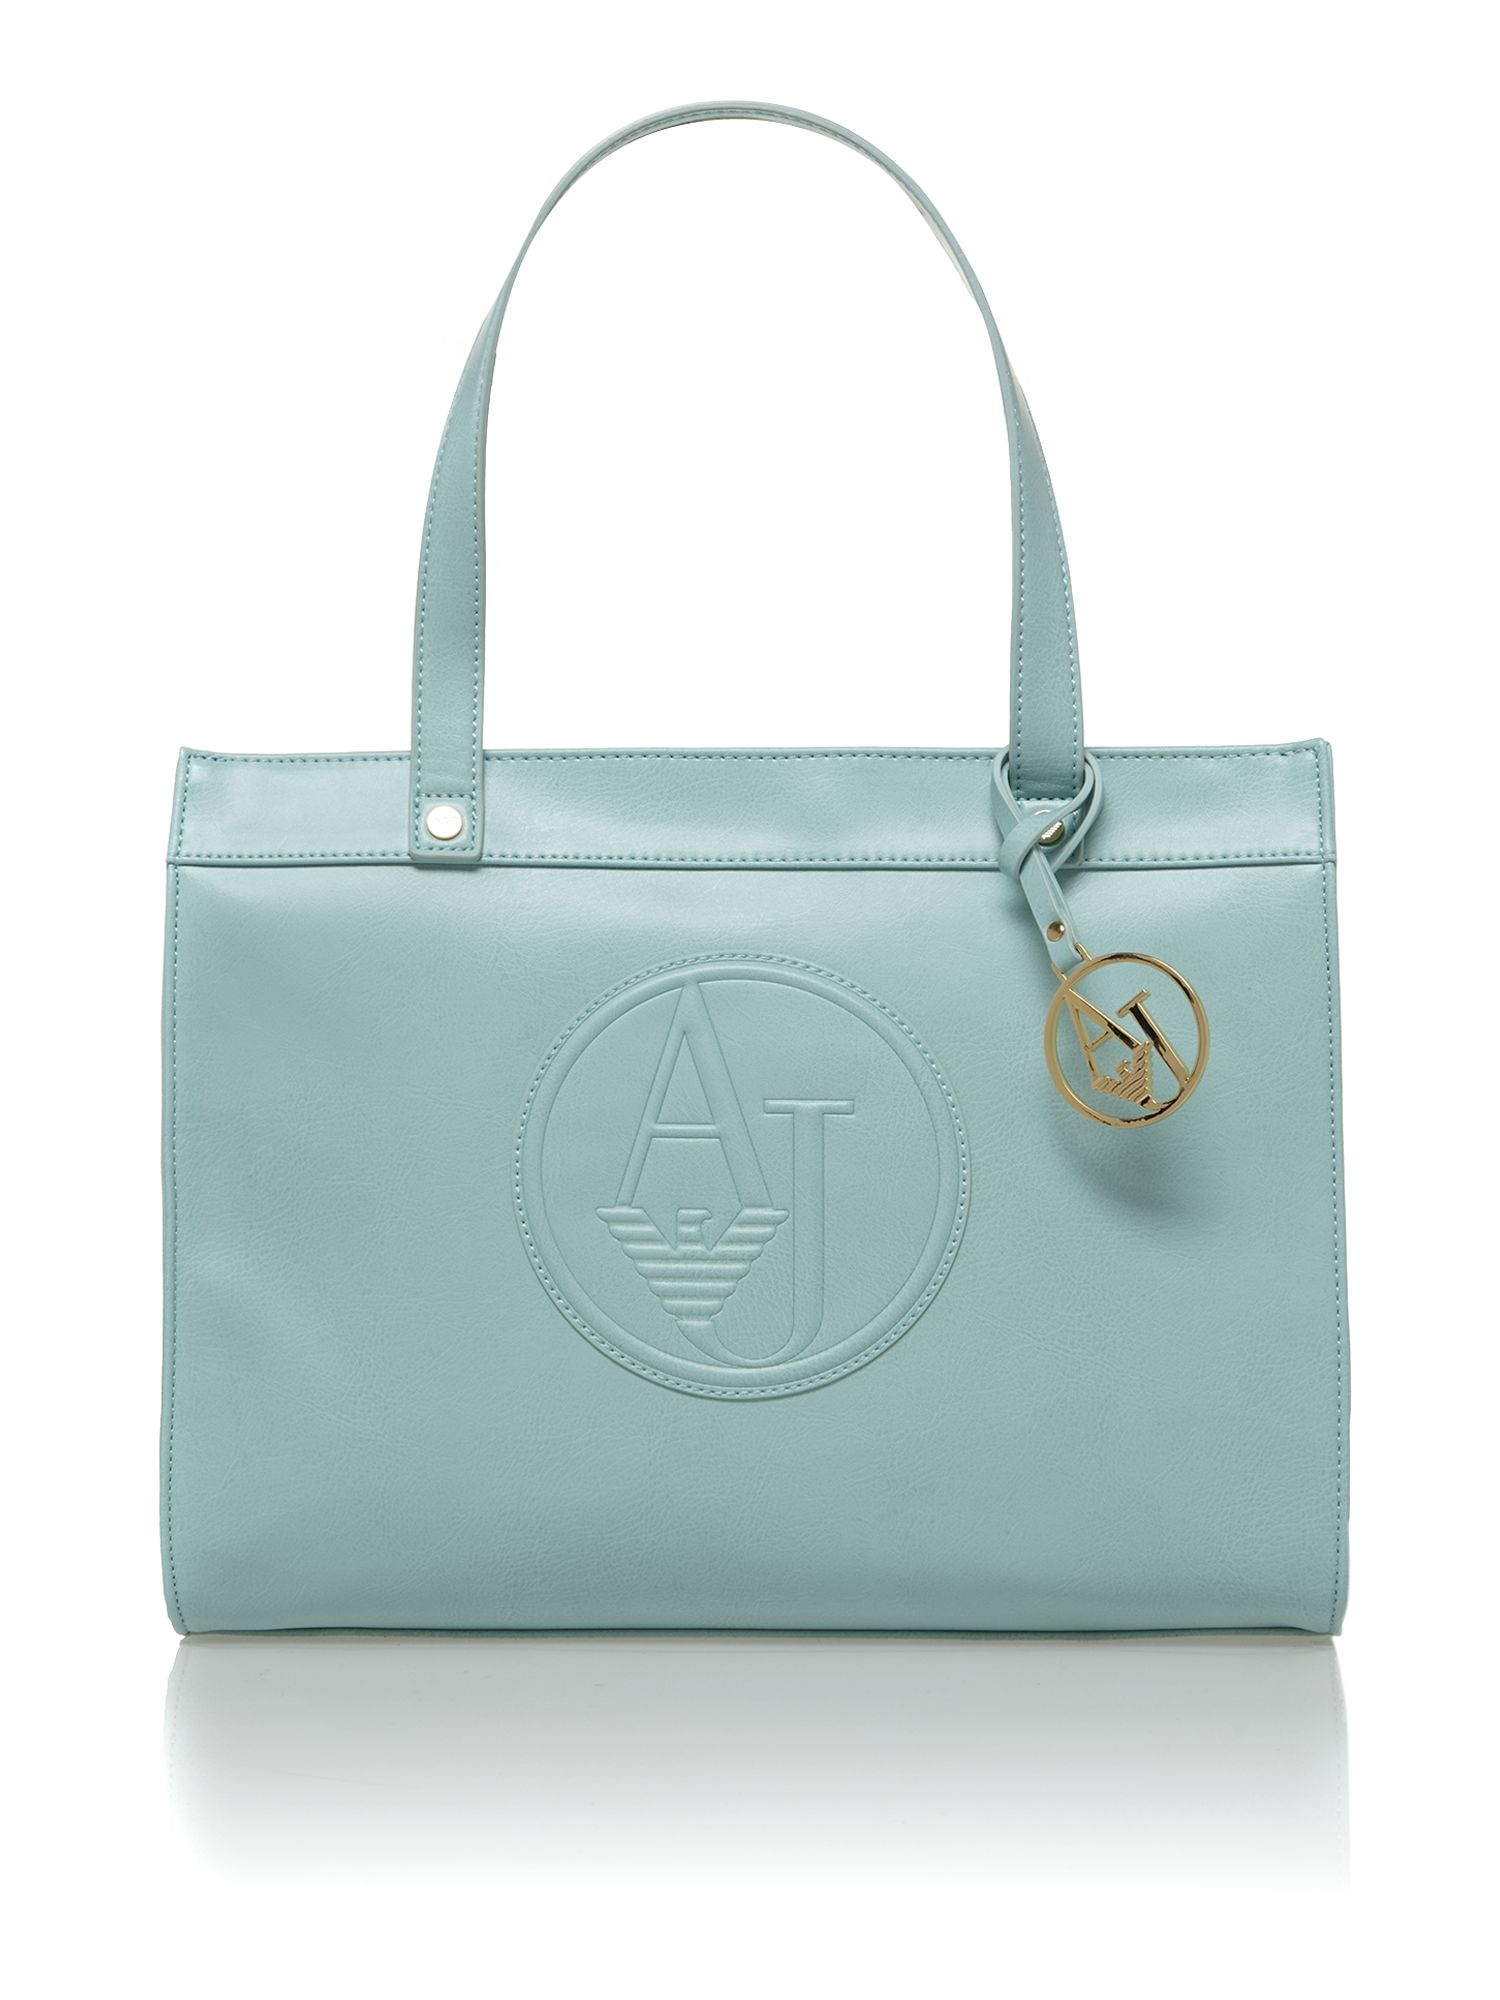 Large logo green tote bag